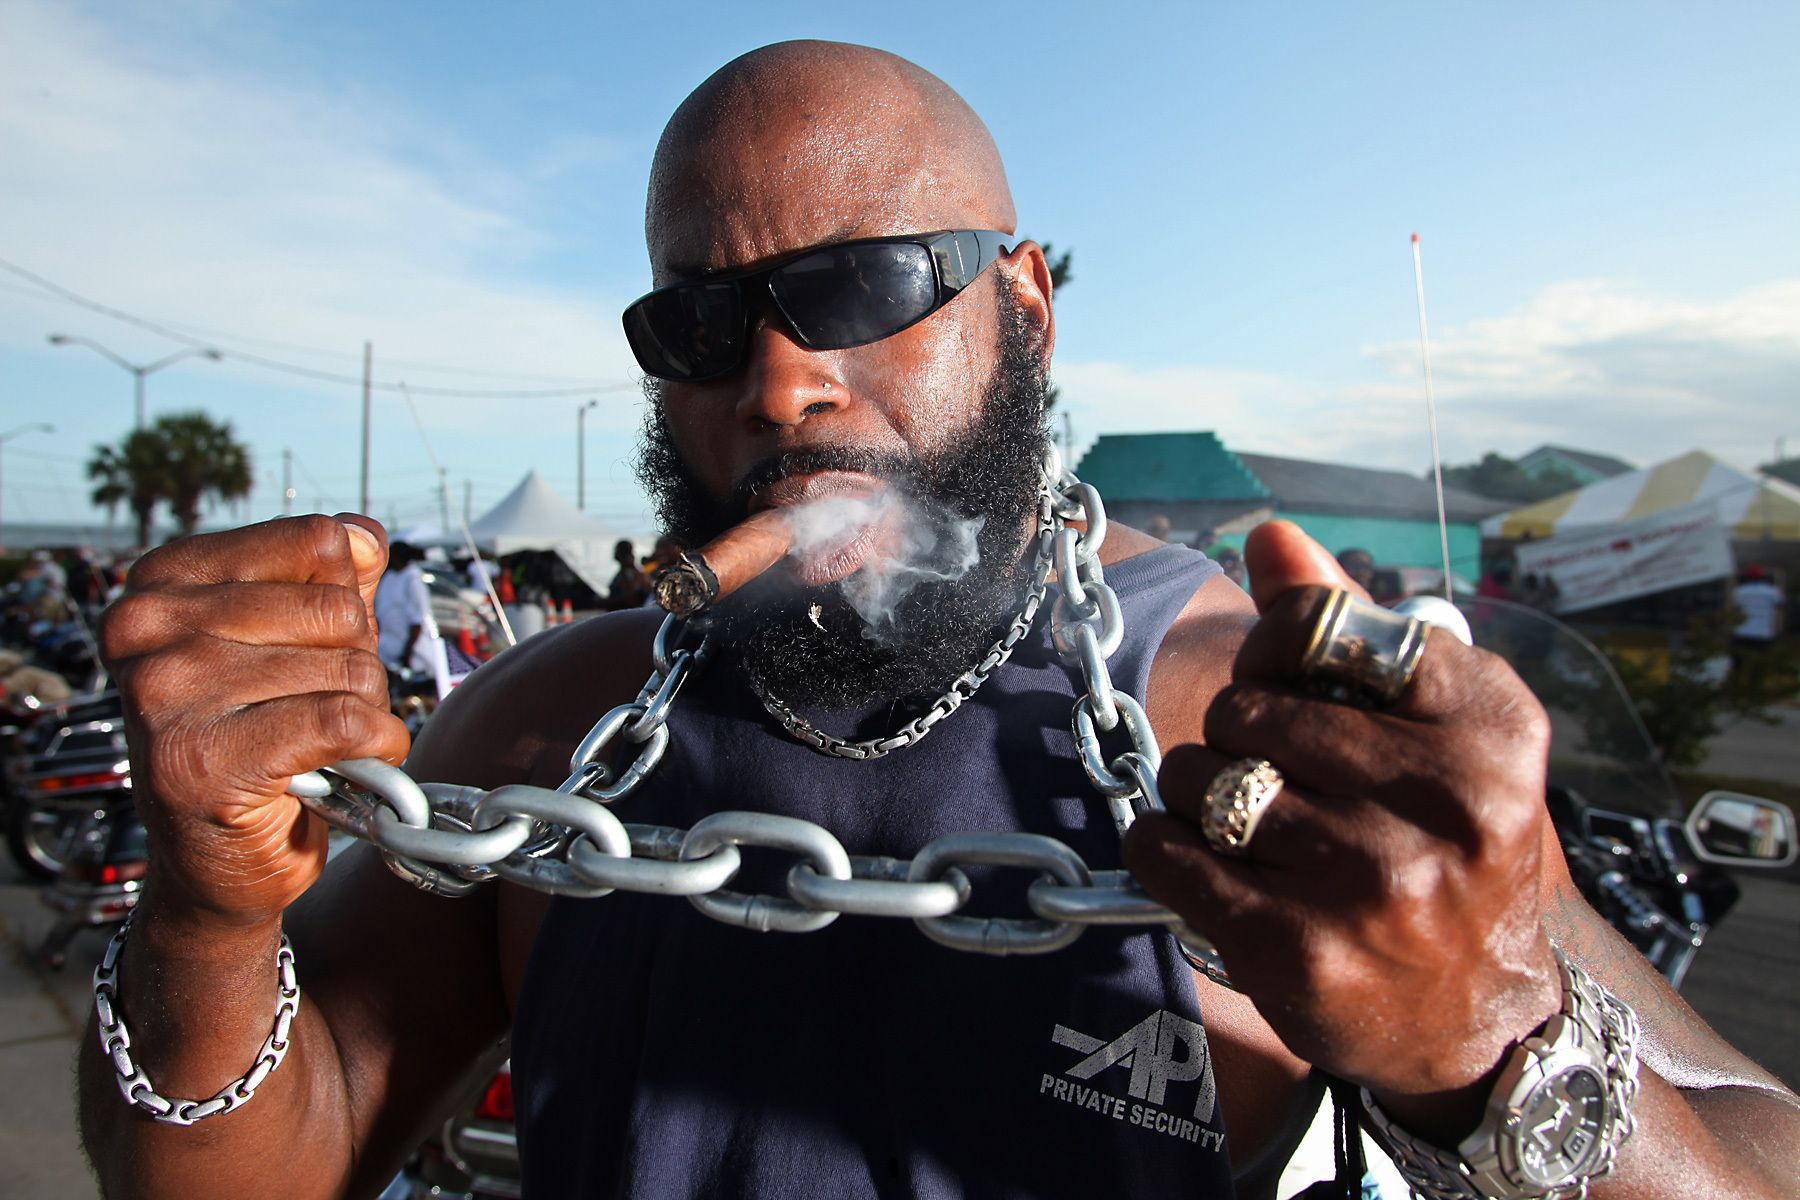 Biker Antwon {quote}Zeus{quote} Harris, of Fayetteville, North Carolina, poses for the camera during the 2012 Atlantic Beach Bikefest May 25, 2012, in Atlantic Beach, South Carolina. The biker festival is one of two rallies in the Myrtle Beach area during the month of May. The annual Harley-Davidson Motorcycle Spring Rally was held the week before.  REUTERS/Randall Hill